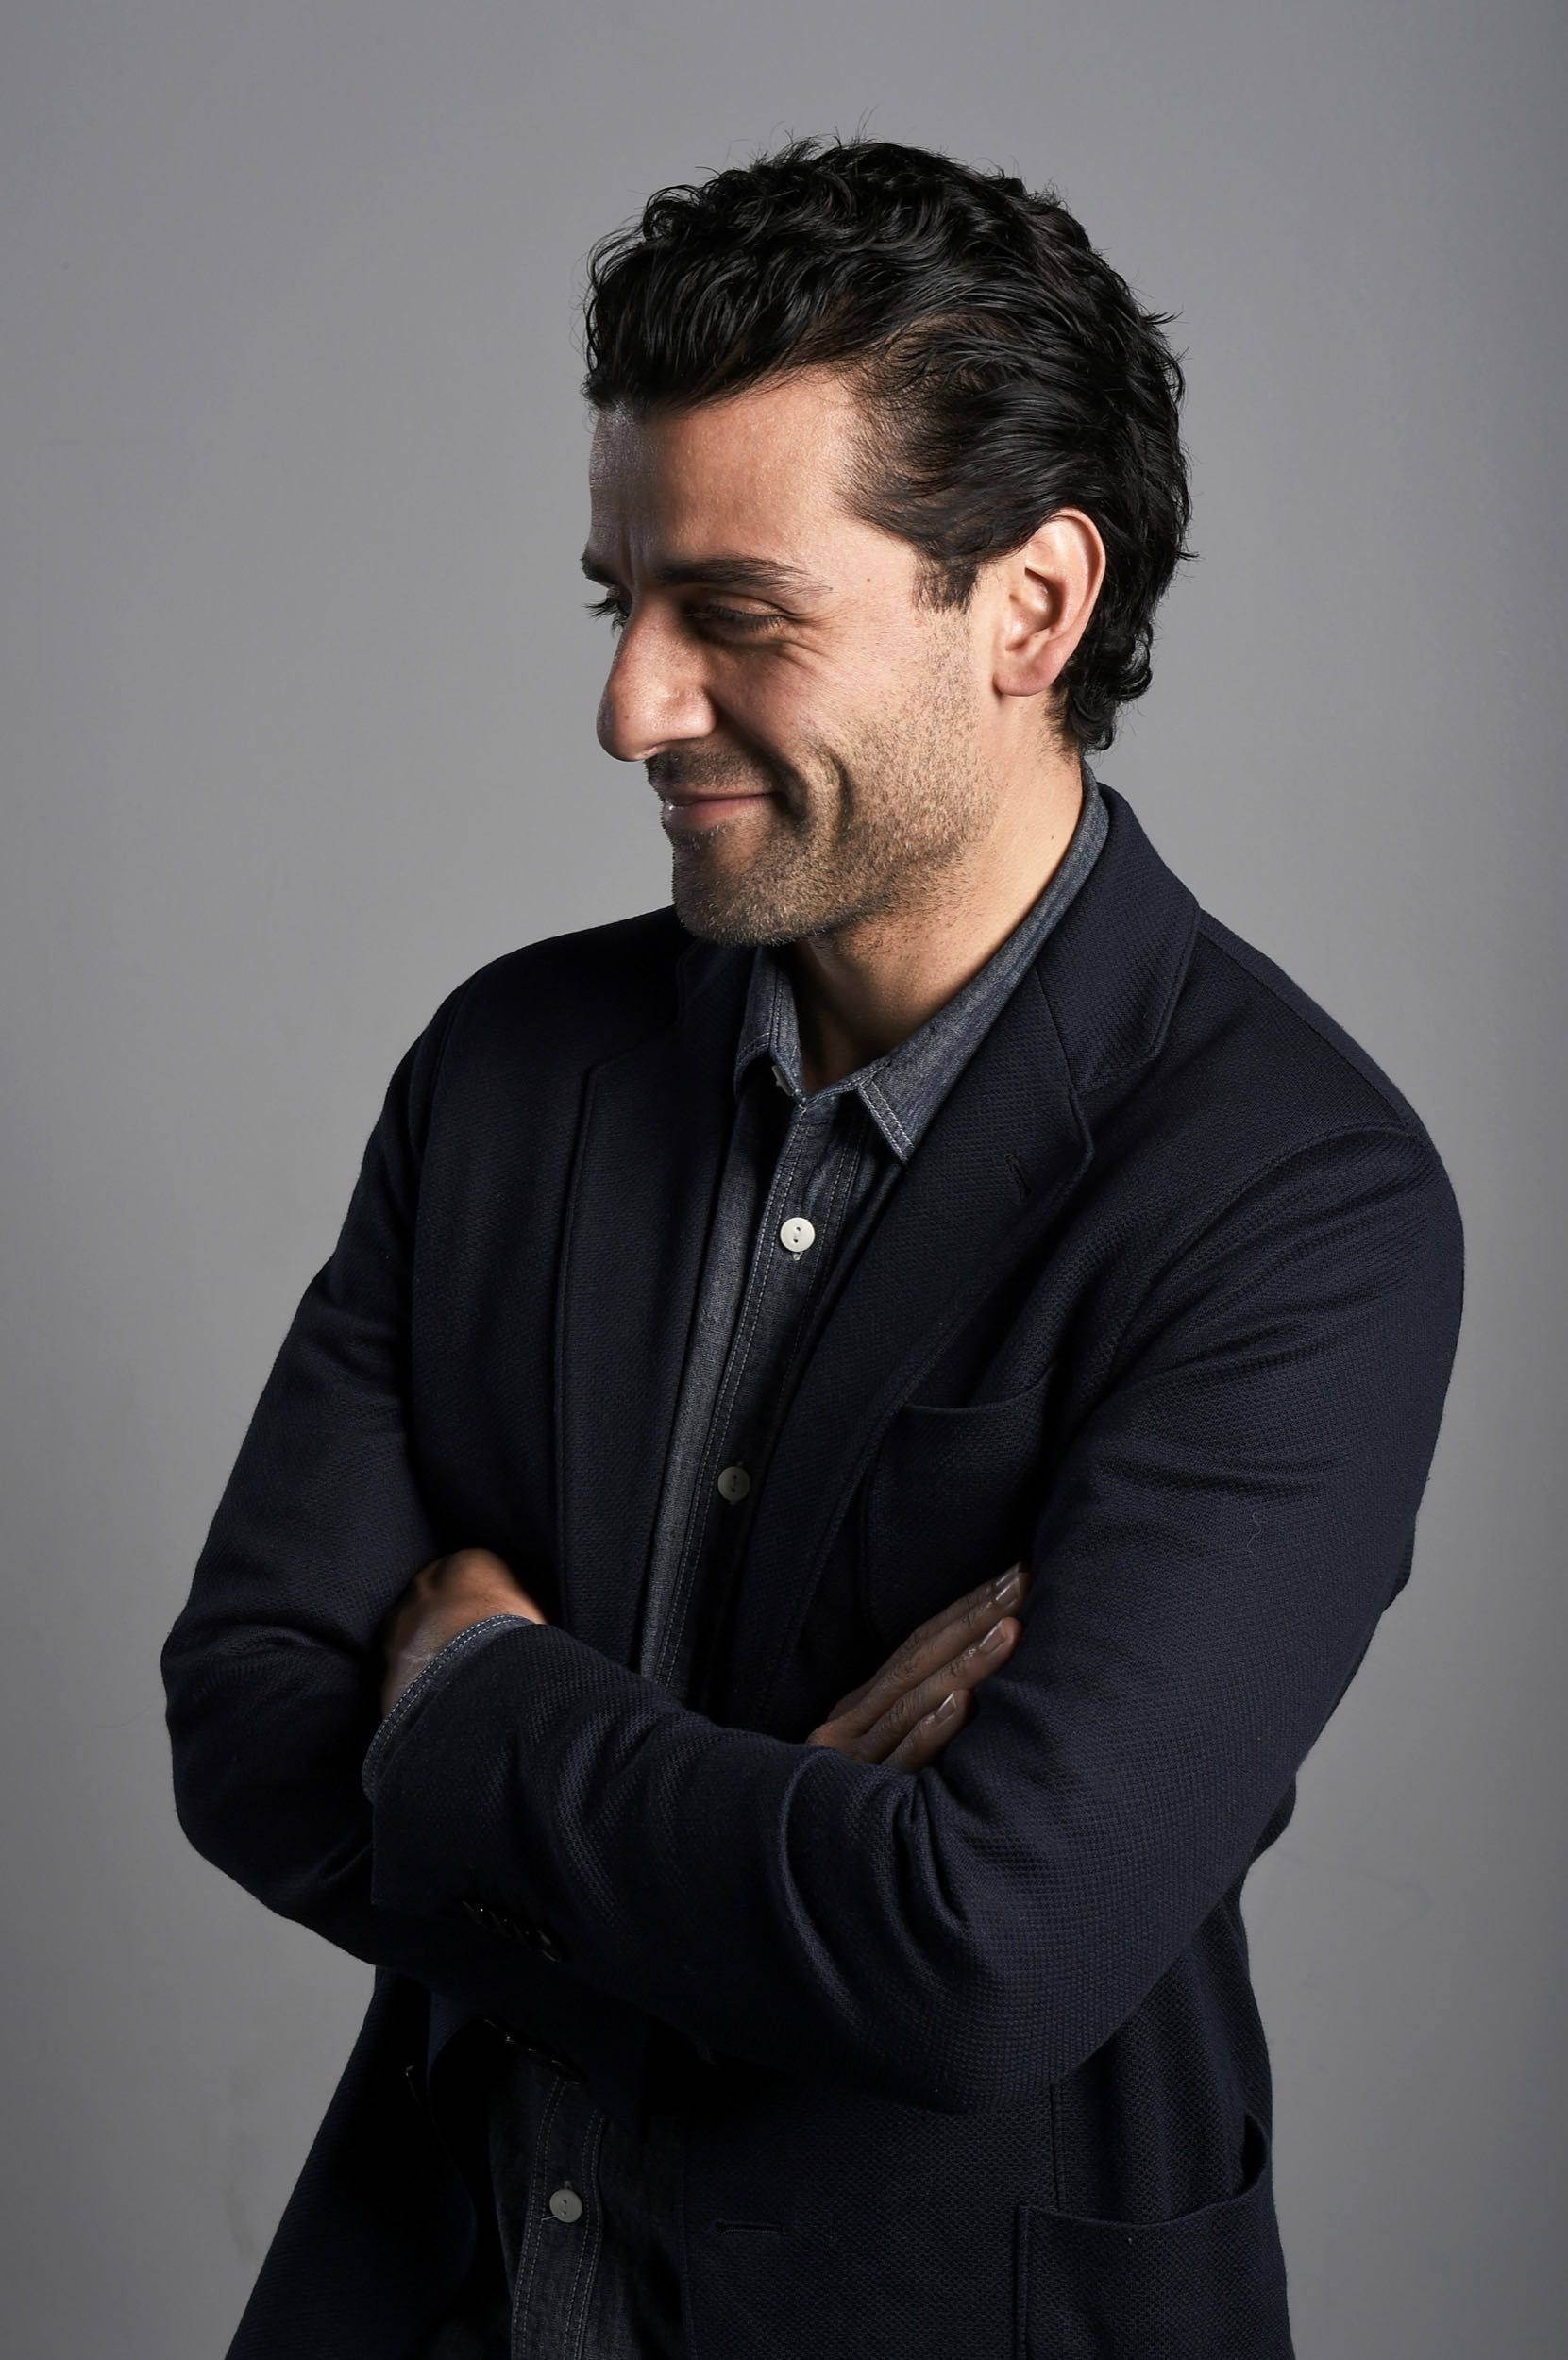 Session #59 - 003 - Oscar-Isaac.com | Your ultimate source for up-to-date images on Oscar Isaac!